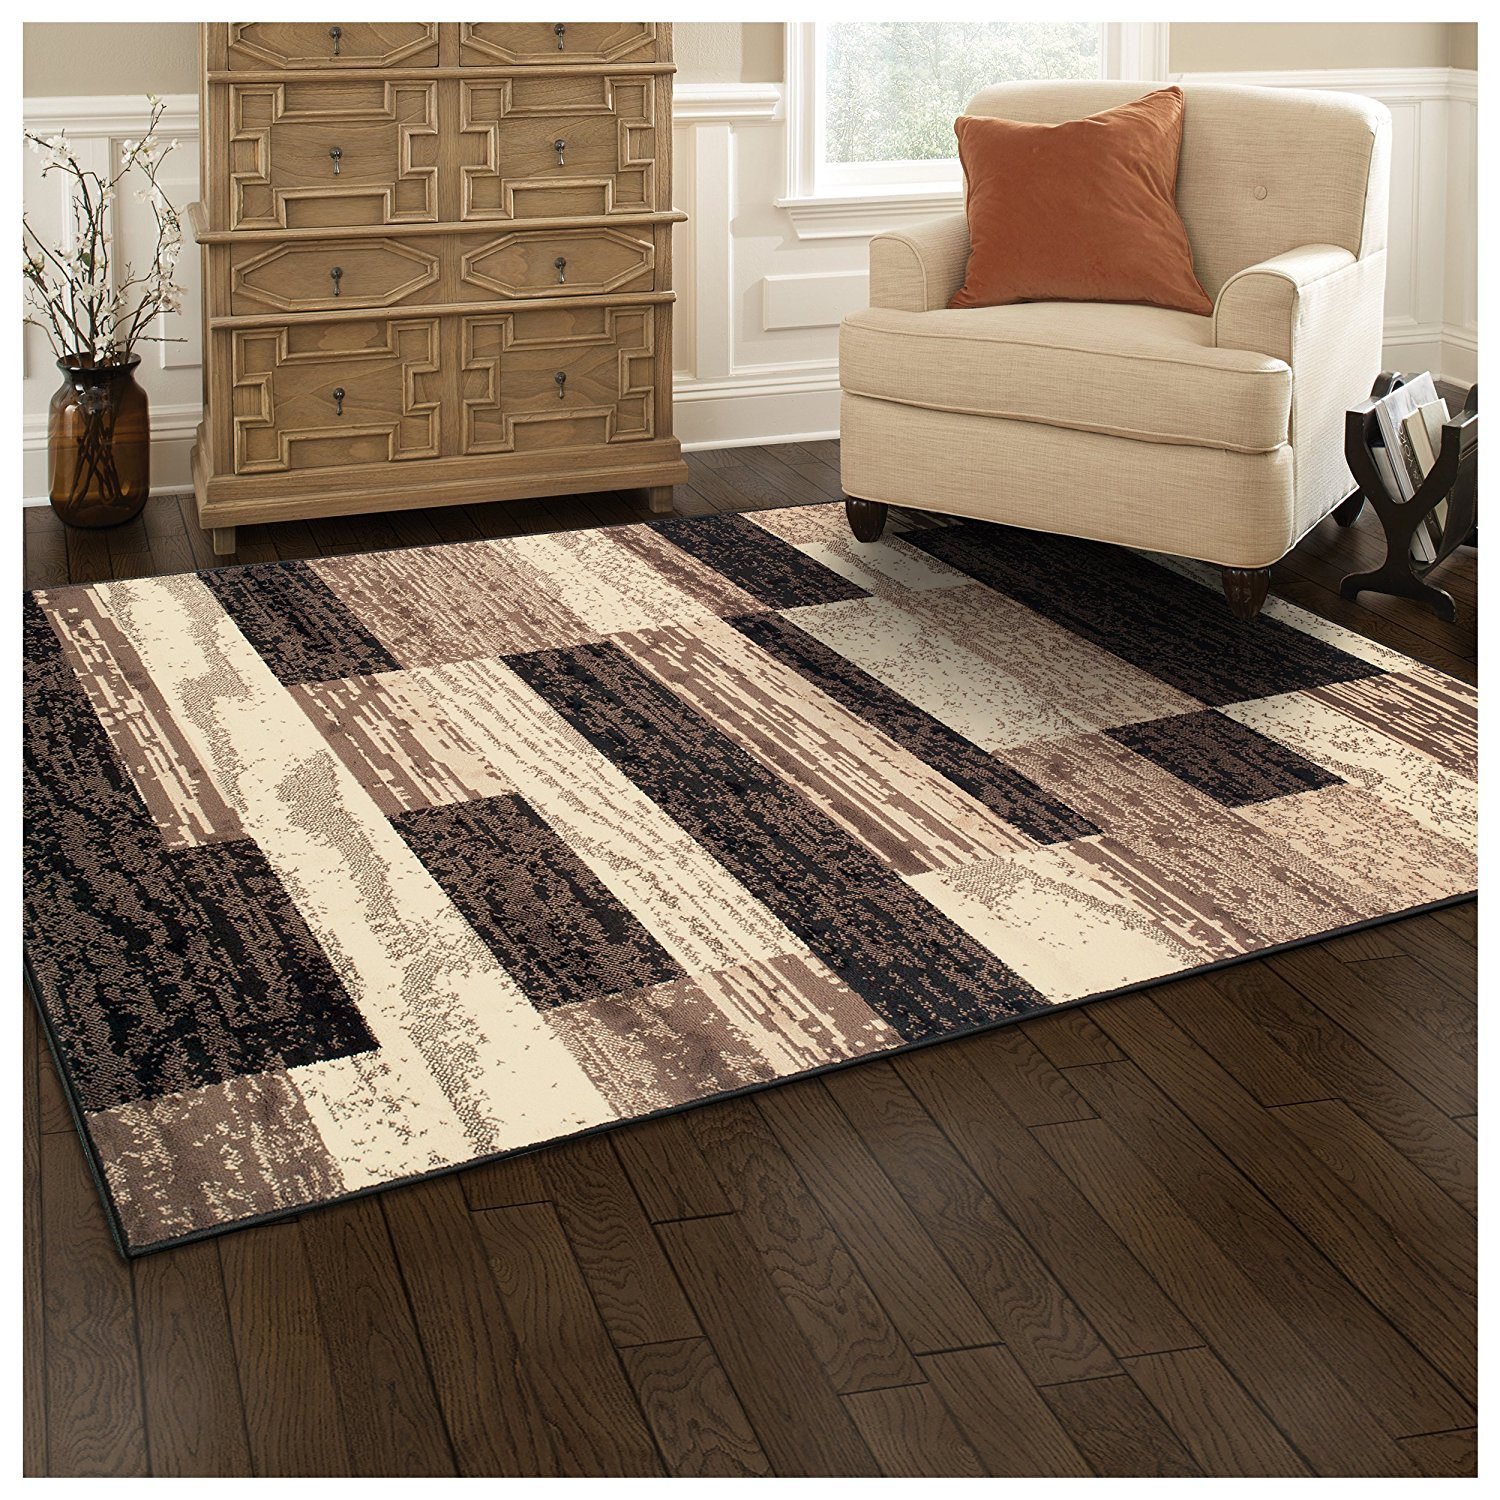 Deals Finders Amazon Collection Of Area Rug S As Of 7